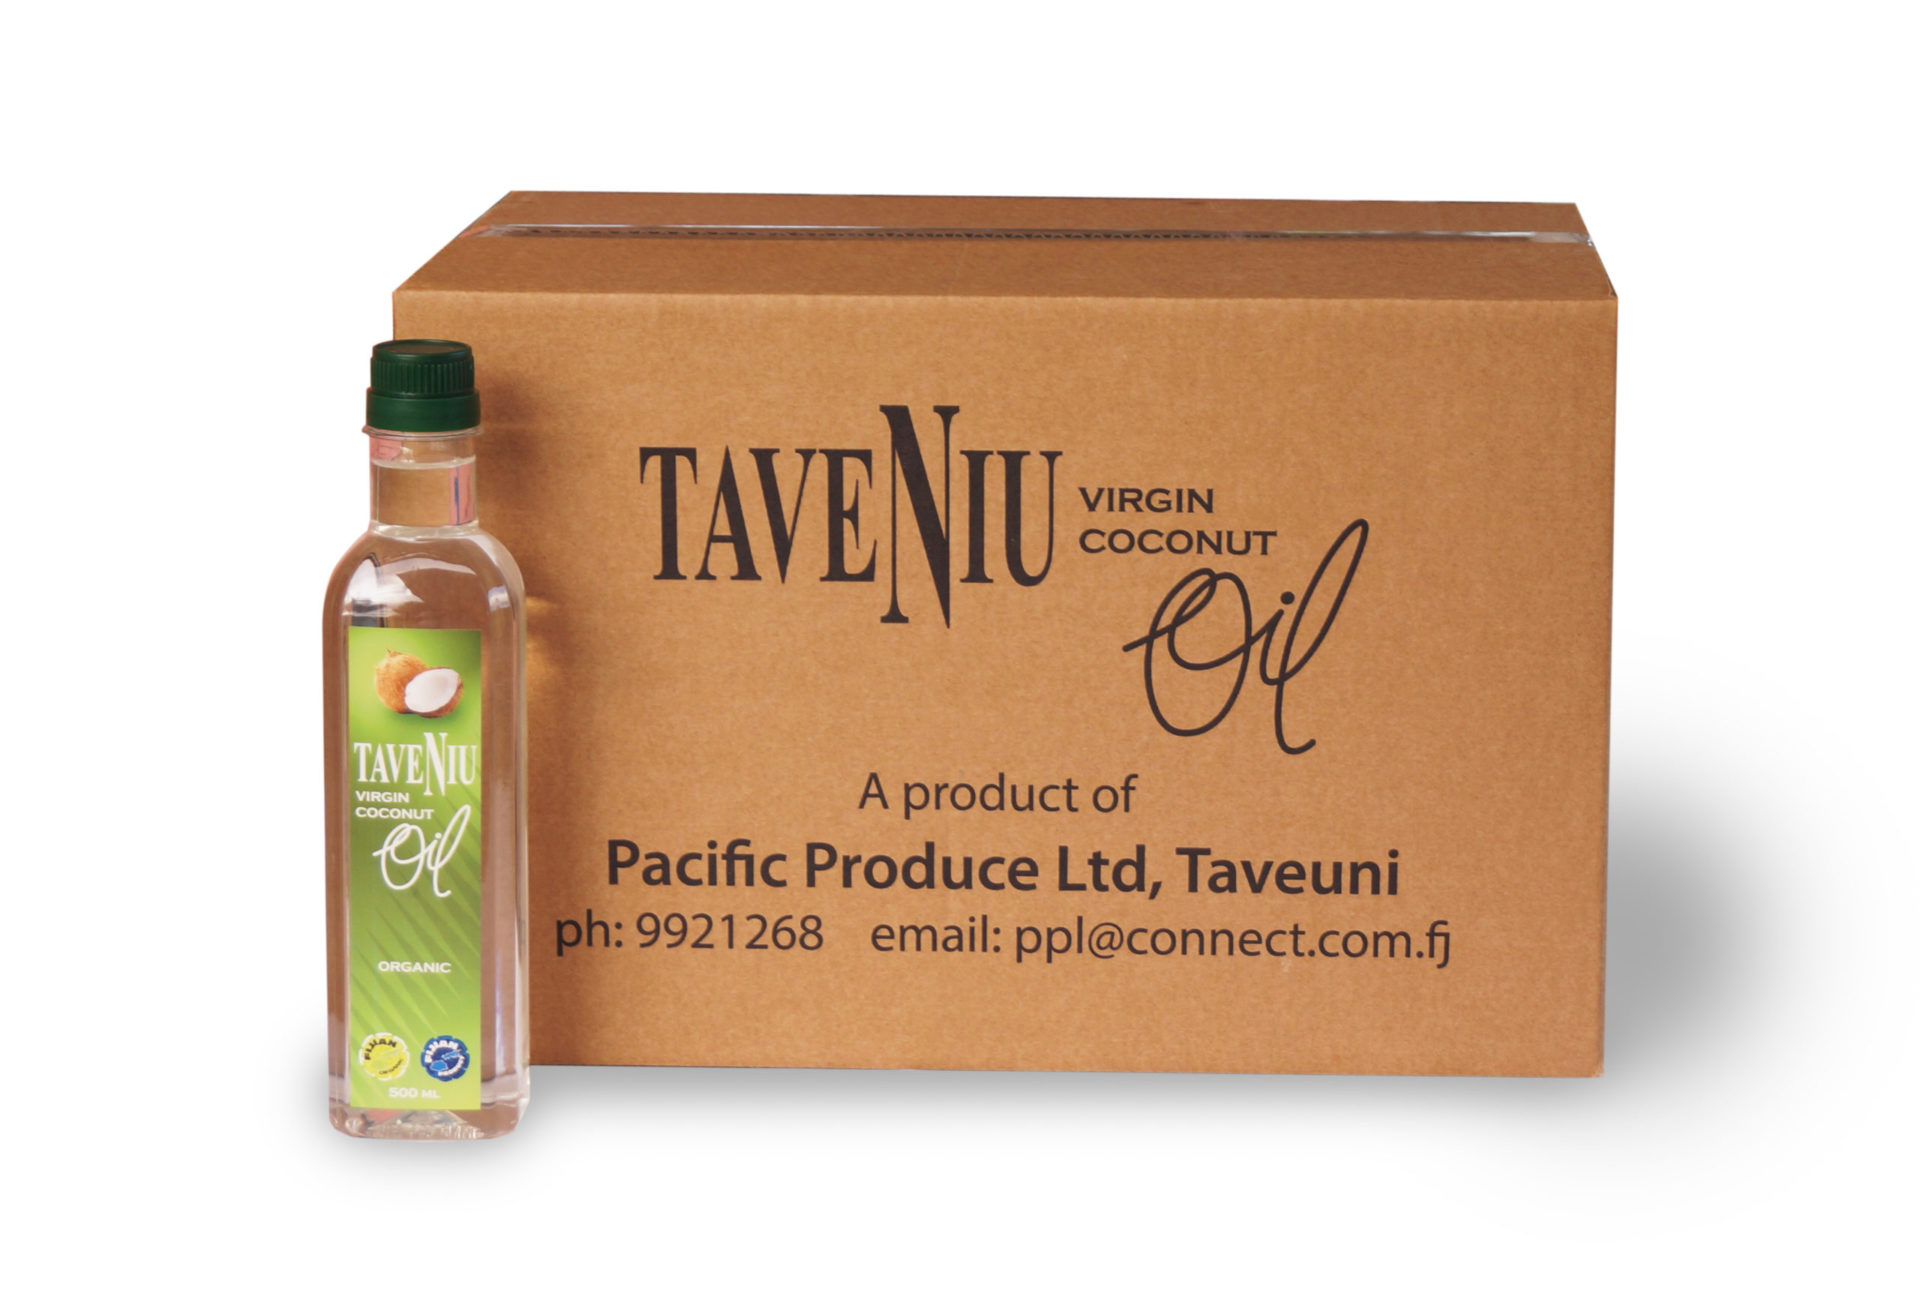 TaveNiu Virgin Coconut Oil Product Photos (3)